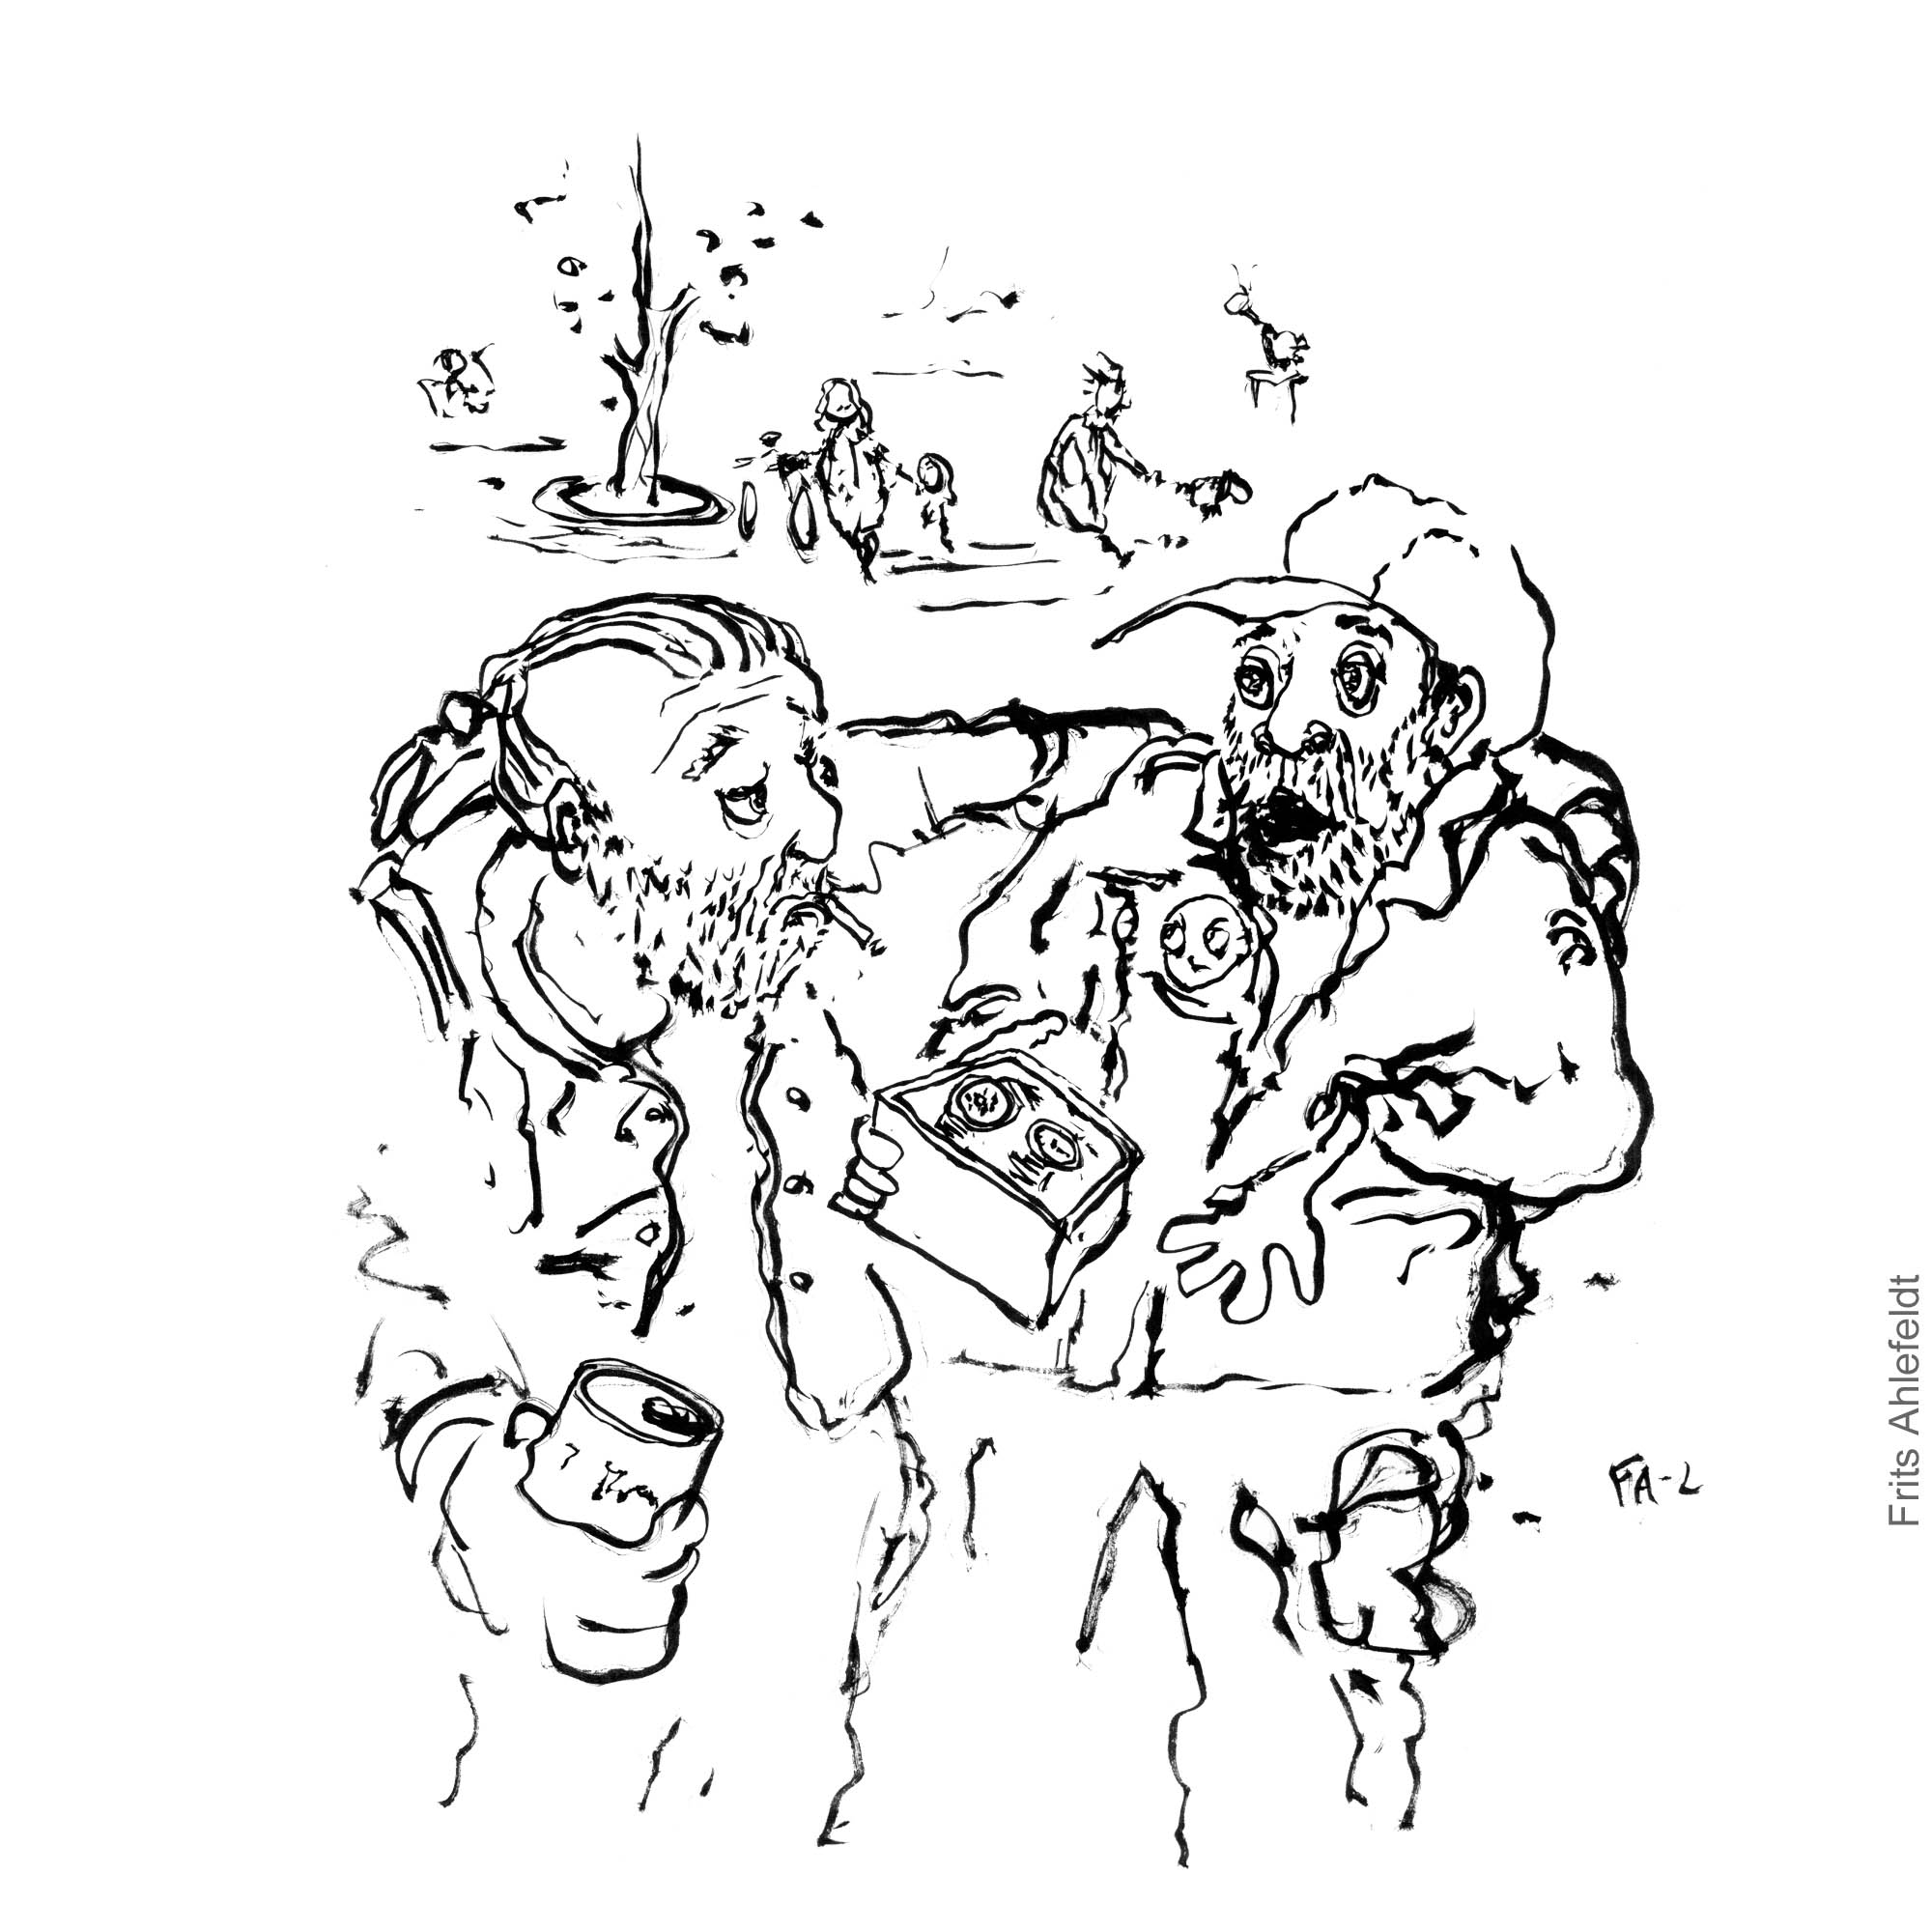 Two men in park one trying to sell the other a watch. Illustration by Frits Ahlefeldt - Black and white version